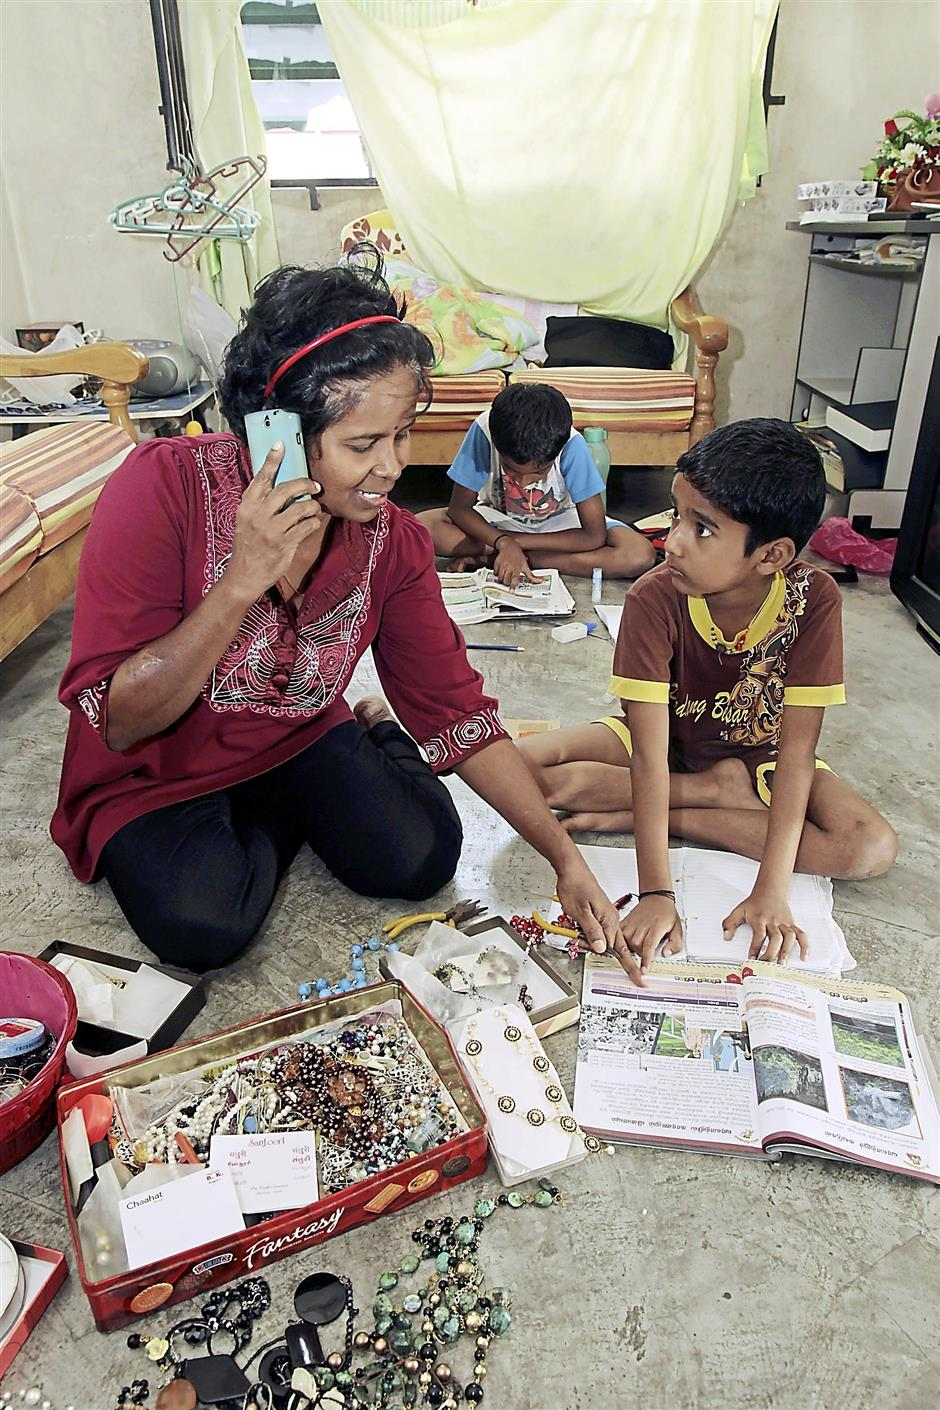 It took Sumathi a while to find a job that would let her balance between earning a living and being there for her children. Photo: ART CHEN/The Star